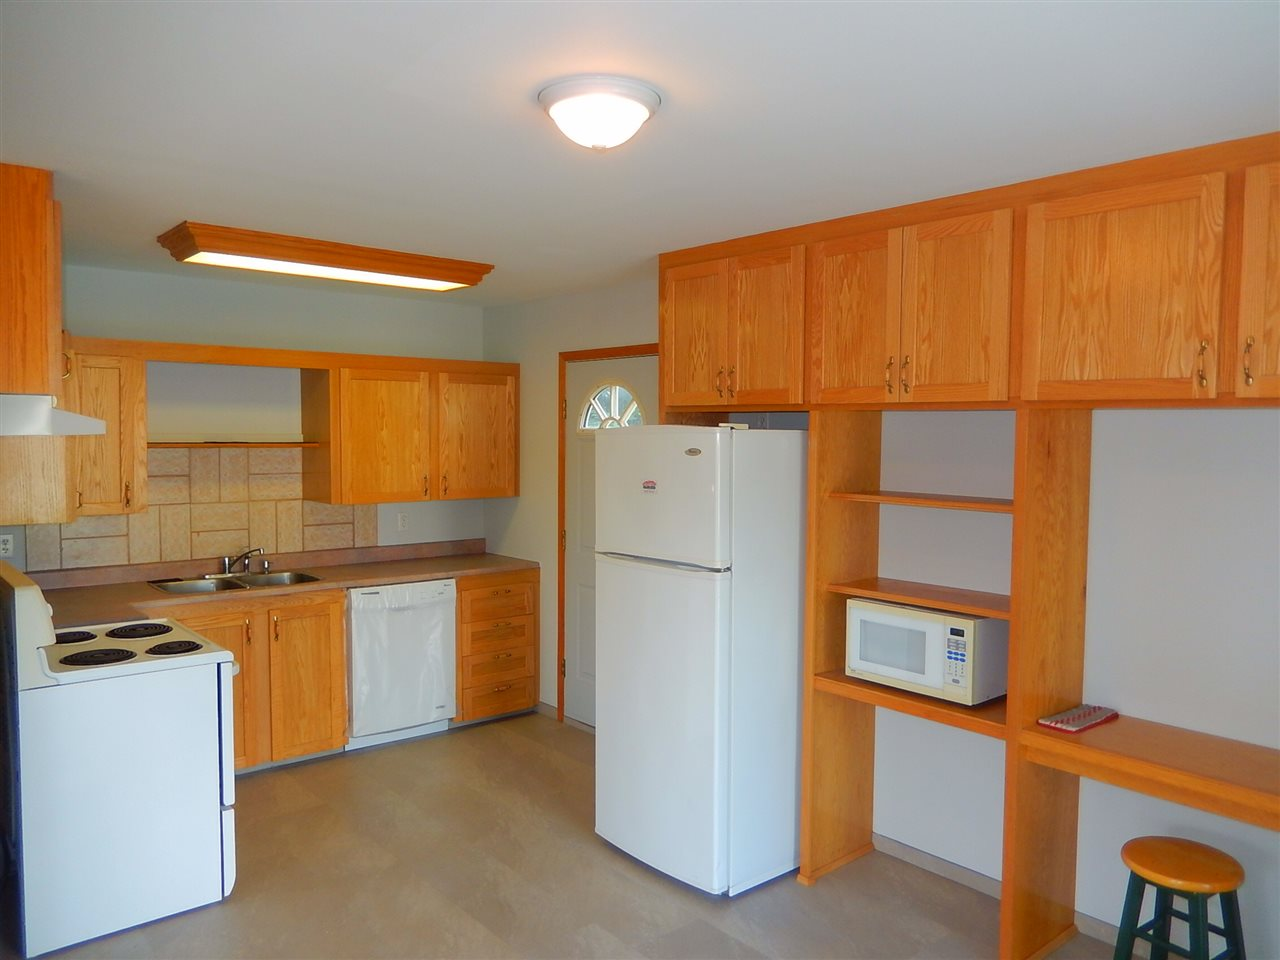 Brand new kitchen with solid oak cabinets.